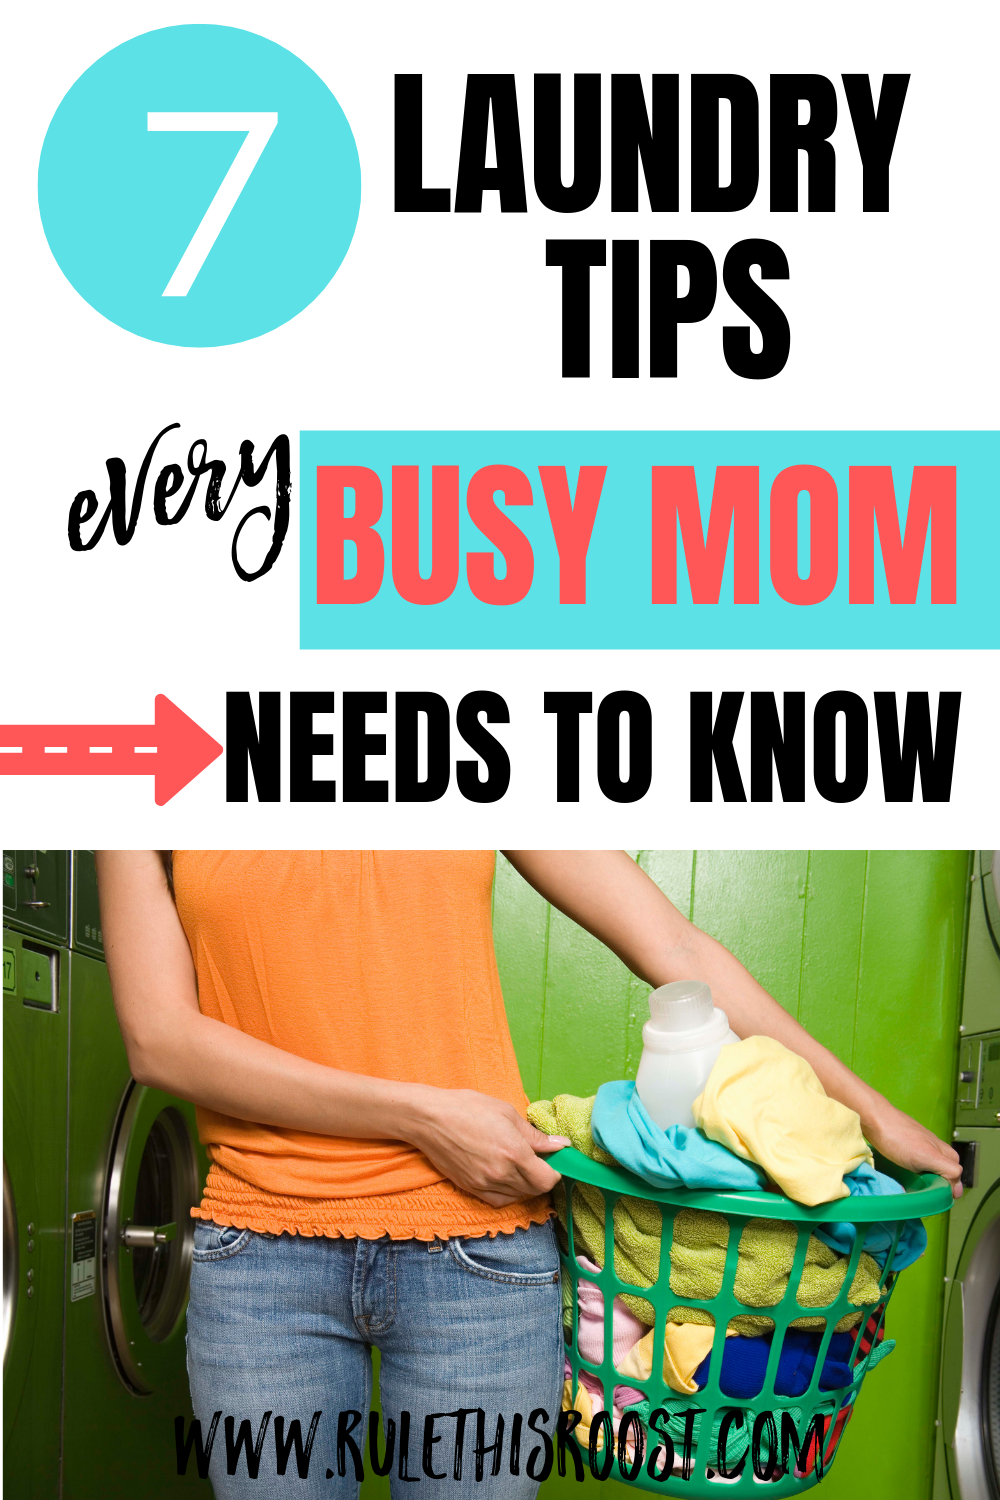 7 Laundry Tips Every Busy Mom Needs to Know. These tips for laundry will make your job so much easier. Work through the overwhelm and get down to business. Laundry has never been so simple. #laundrytips #laundry #momlife #busymom #laundryadvice